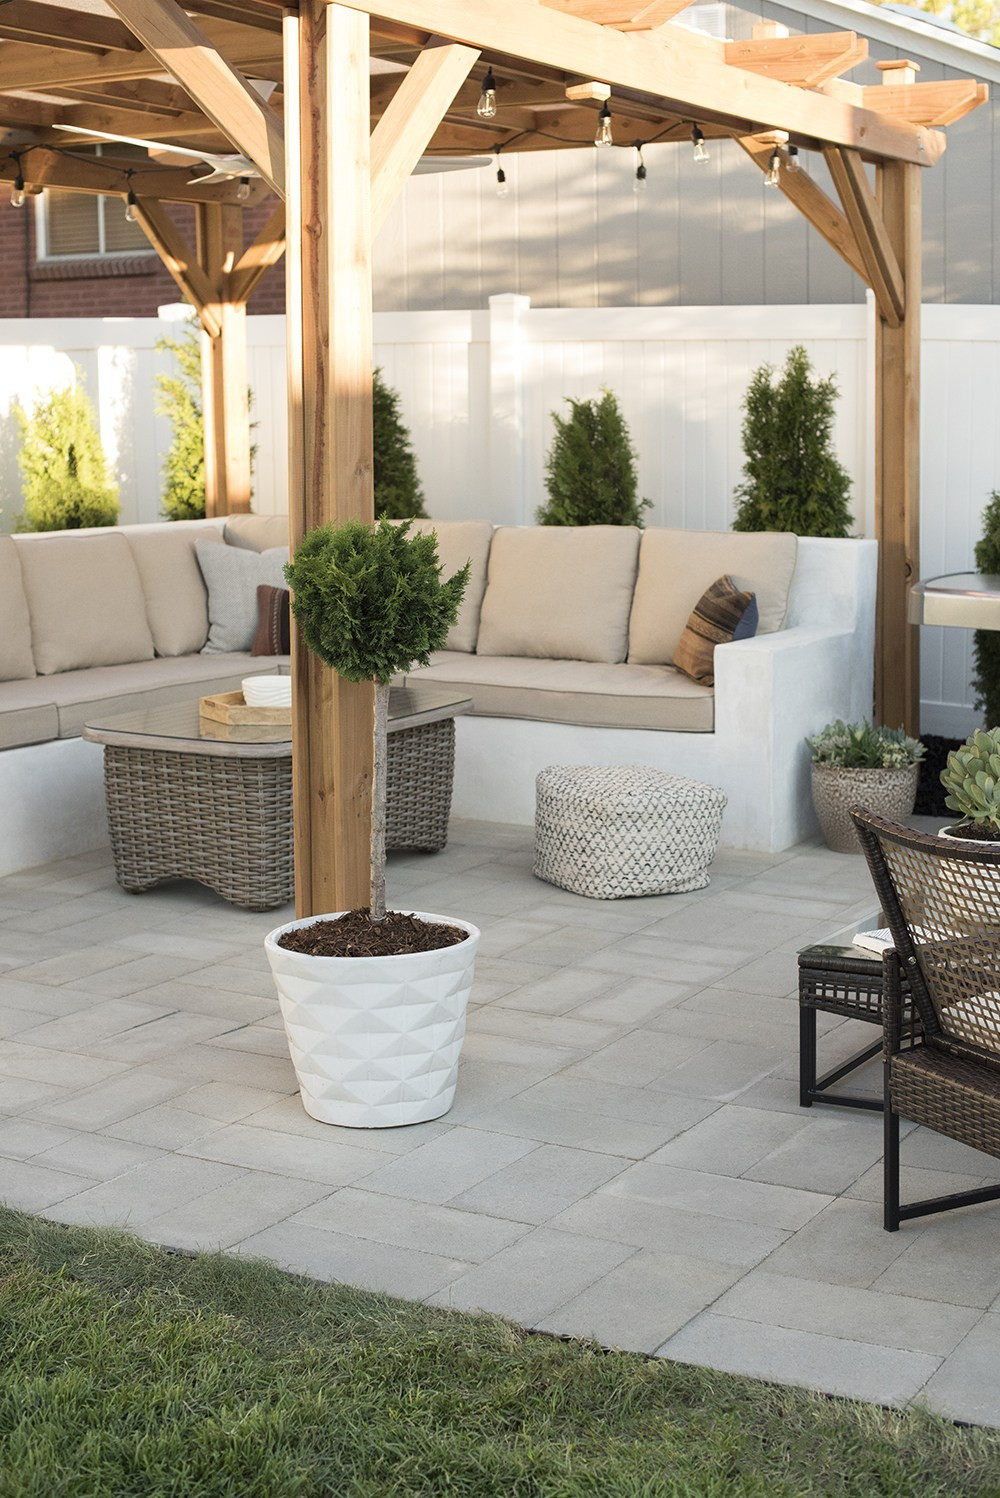 Best ideas about DIY Pavers Patio . Save or Pin How to Install A Custom Paver Patio Room for Tuesday Blog Now.